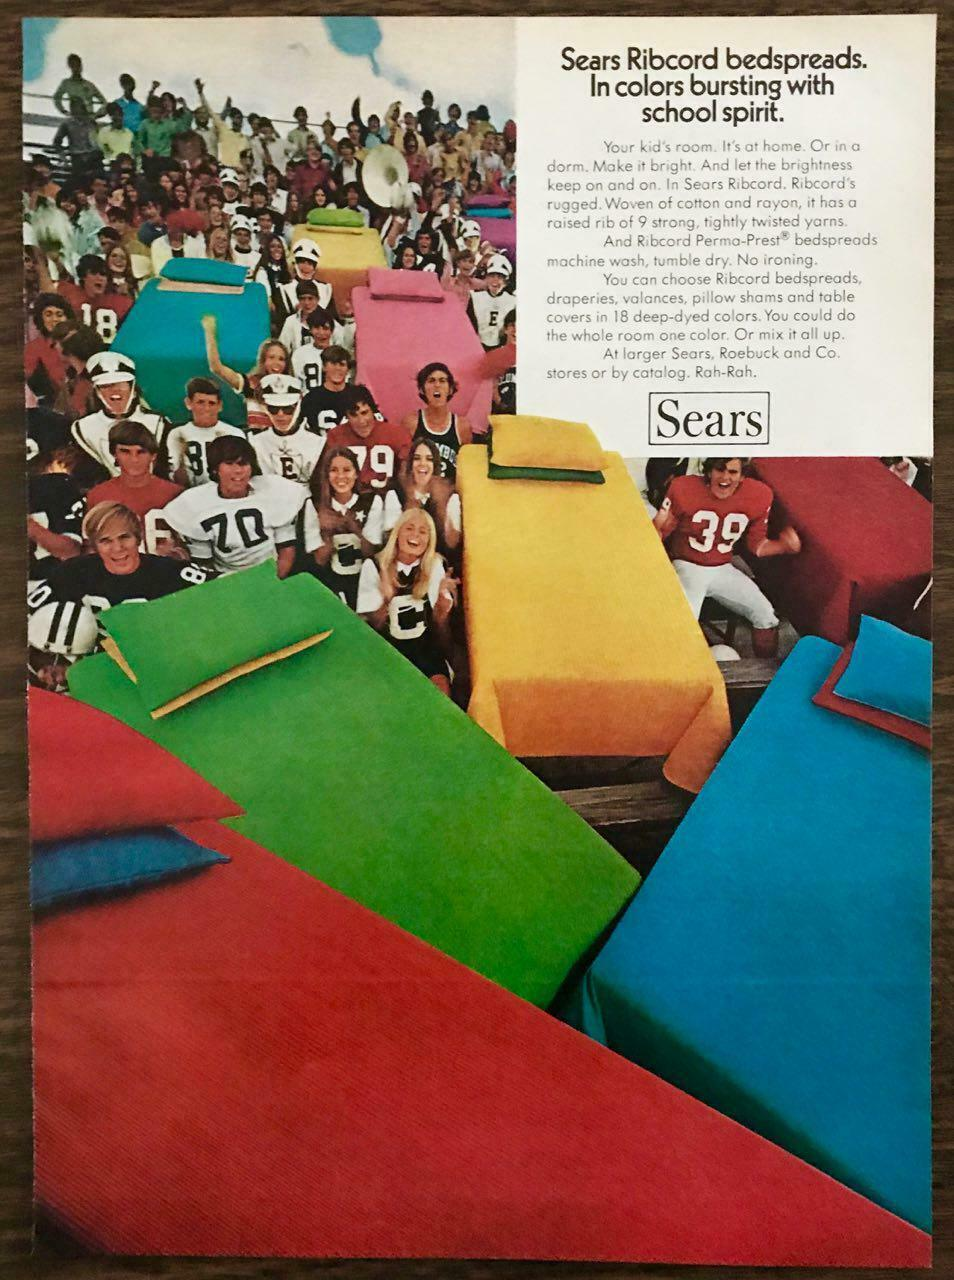 Primary image for 1972 Sears Roebuck PRINT AD Ribcord Bedspreads Colors Bursting w School Spirit